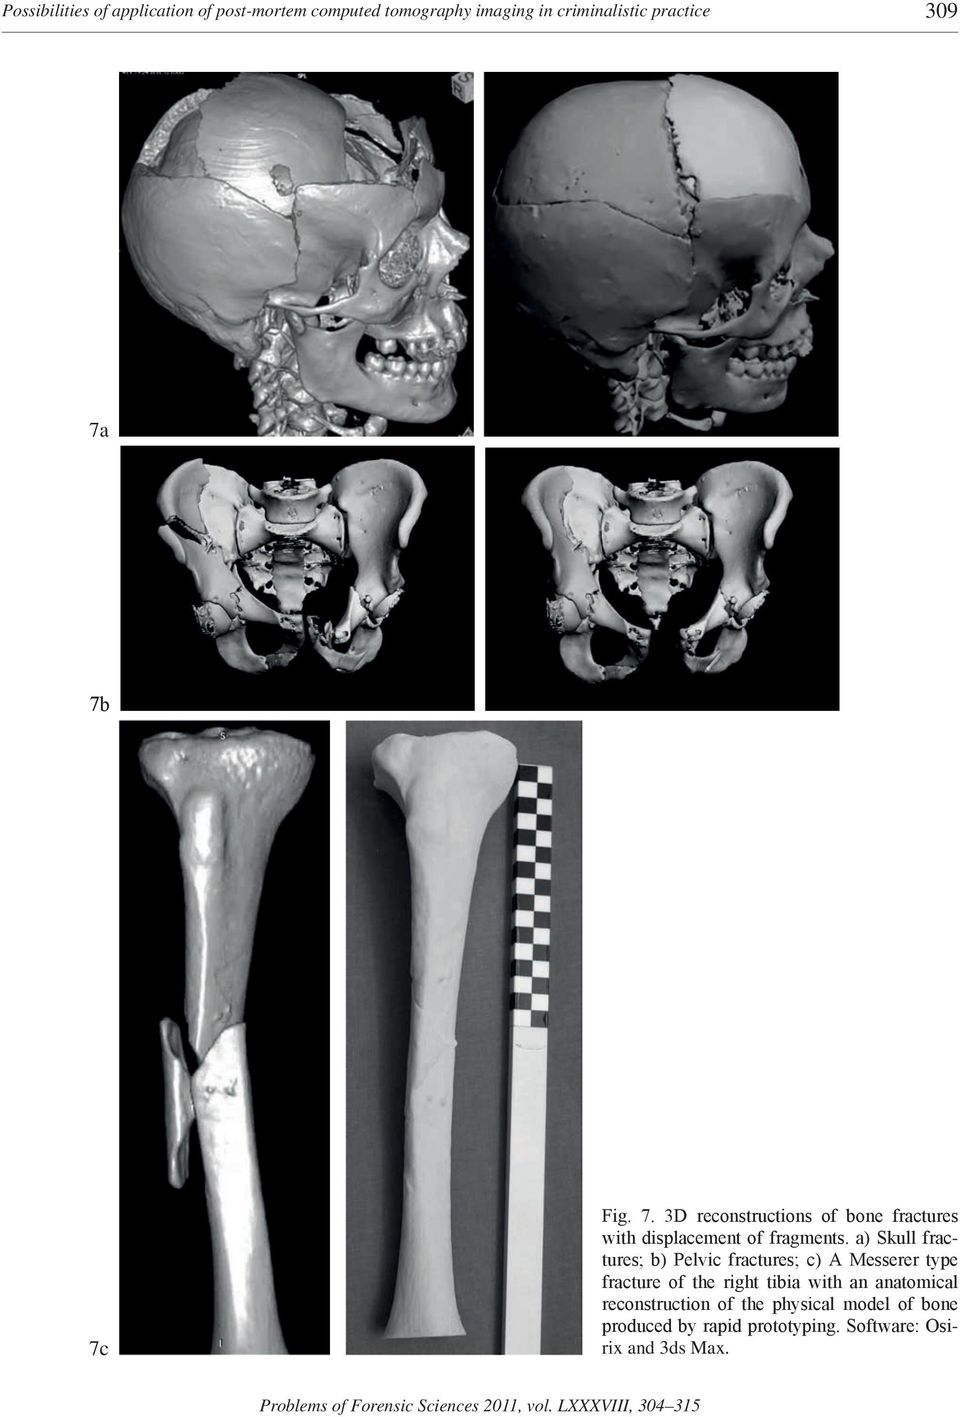 a) Skull fractures; b) Pelvic fractures; c) A Messerer type fracture of the right tibia with an